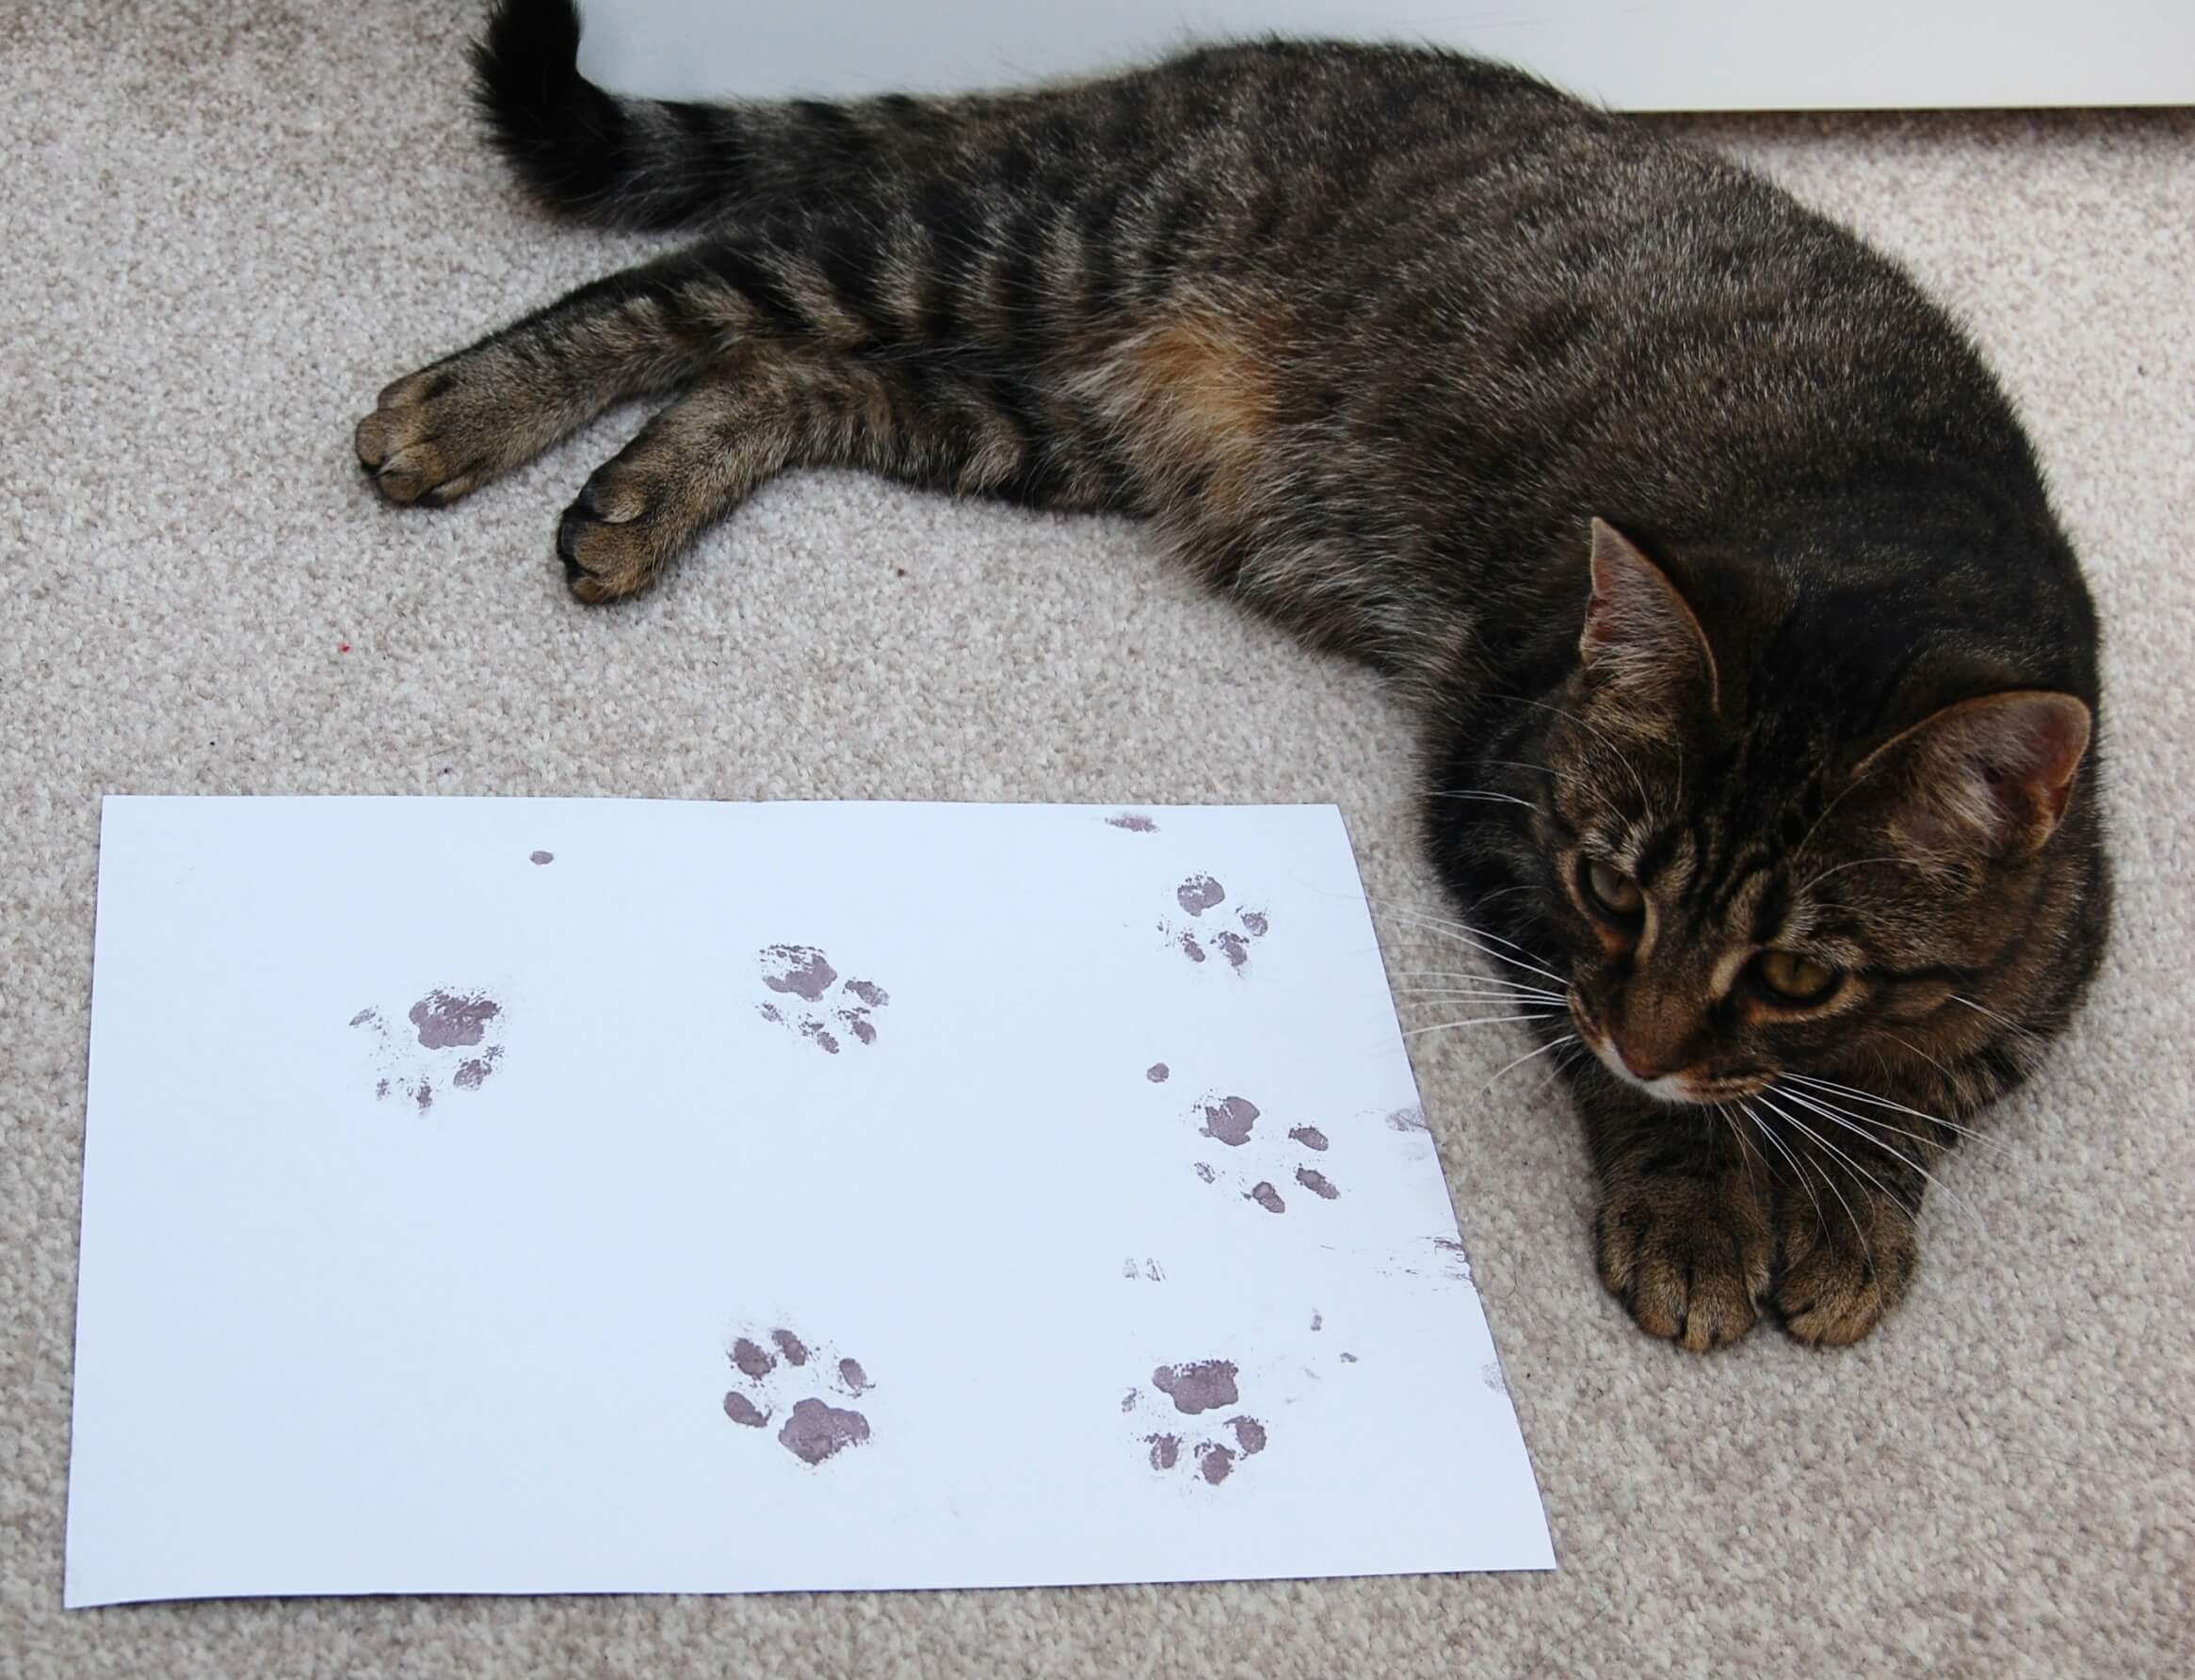 Tabby cat with paw prints, we suddenly lost Tiger, which breaks my heart